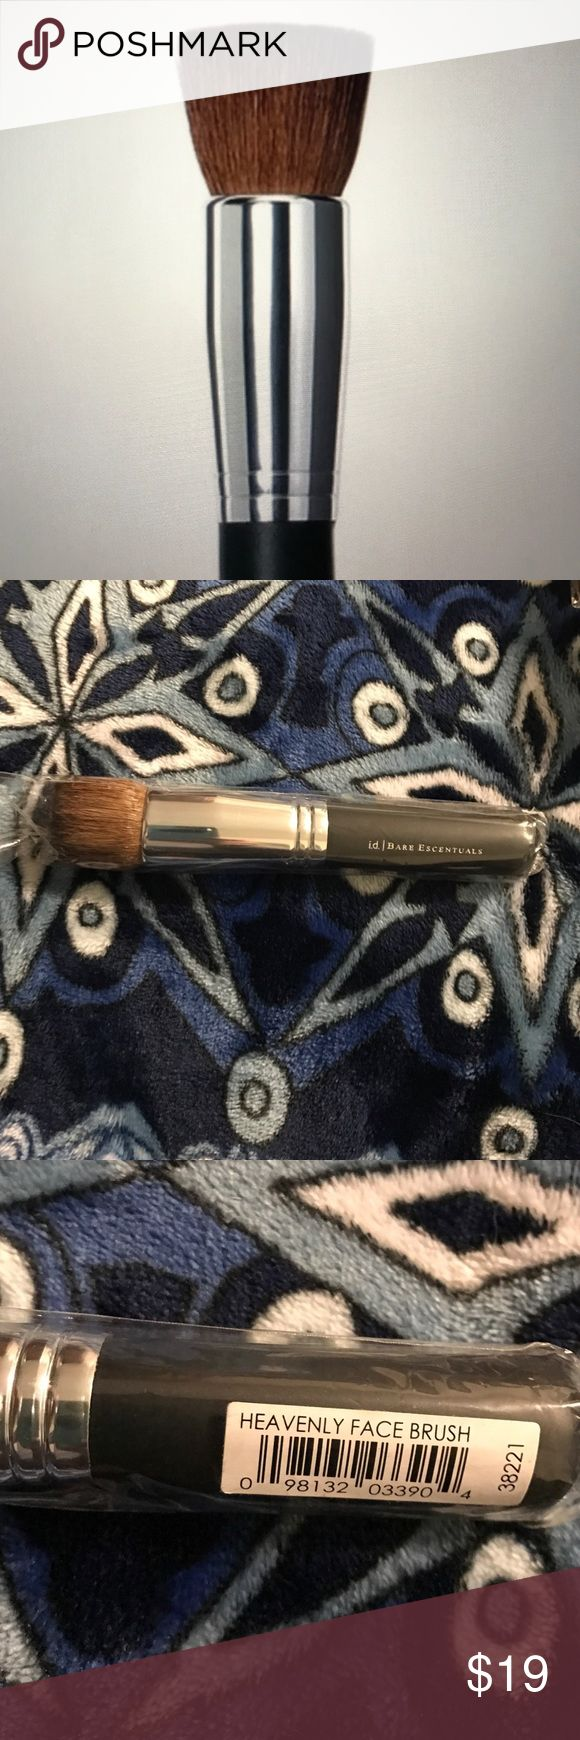 Heavenly Face Brush Brand new full-size! The brush is still sealed and has never been used. Medium to full coverage. Heavenly face brush by Bare Escentuals Bare Escentuals Makeup Brushes & Tools